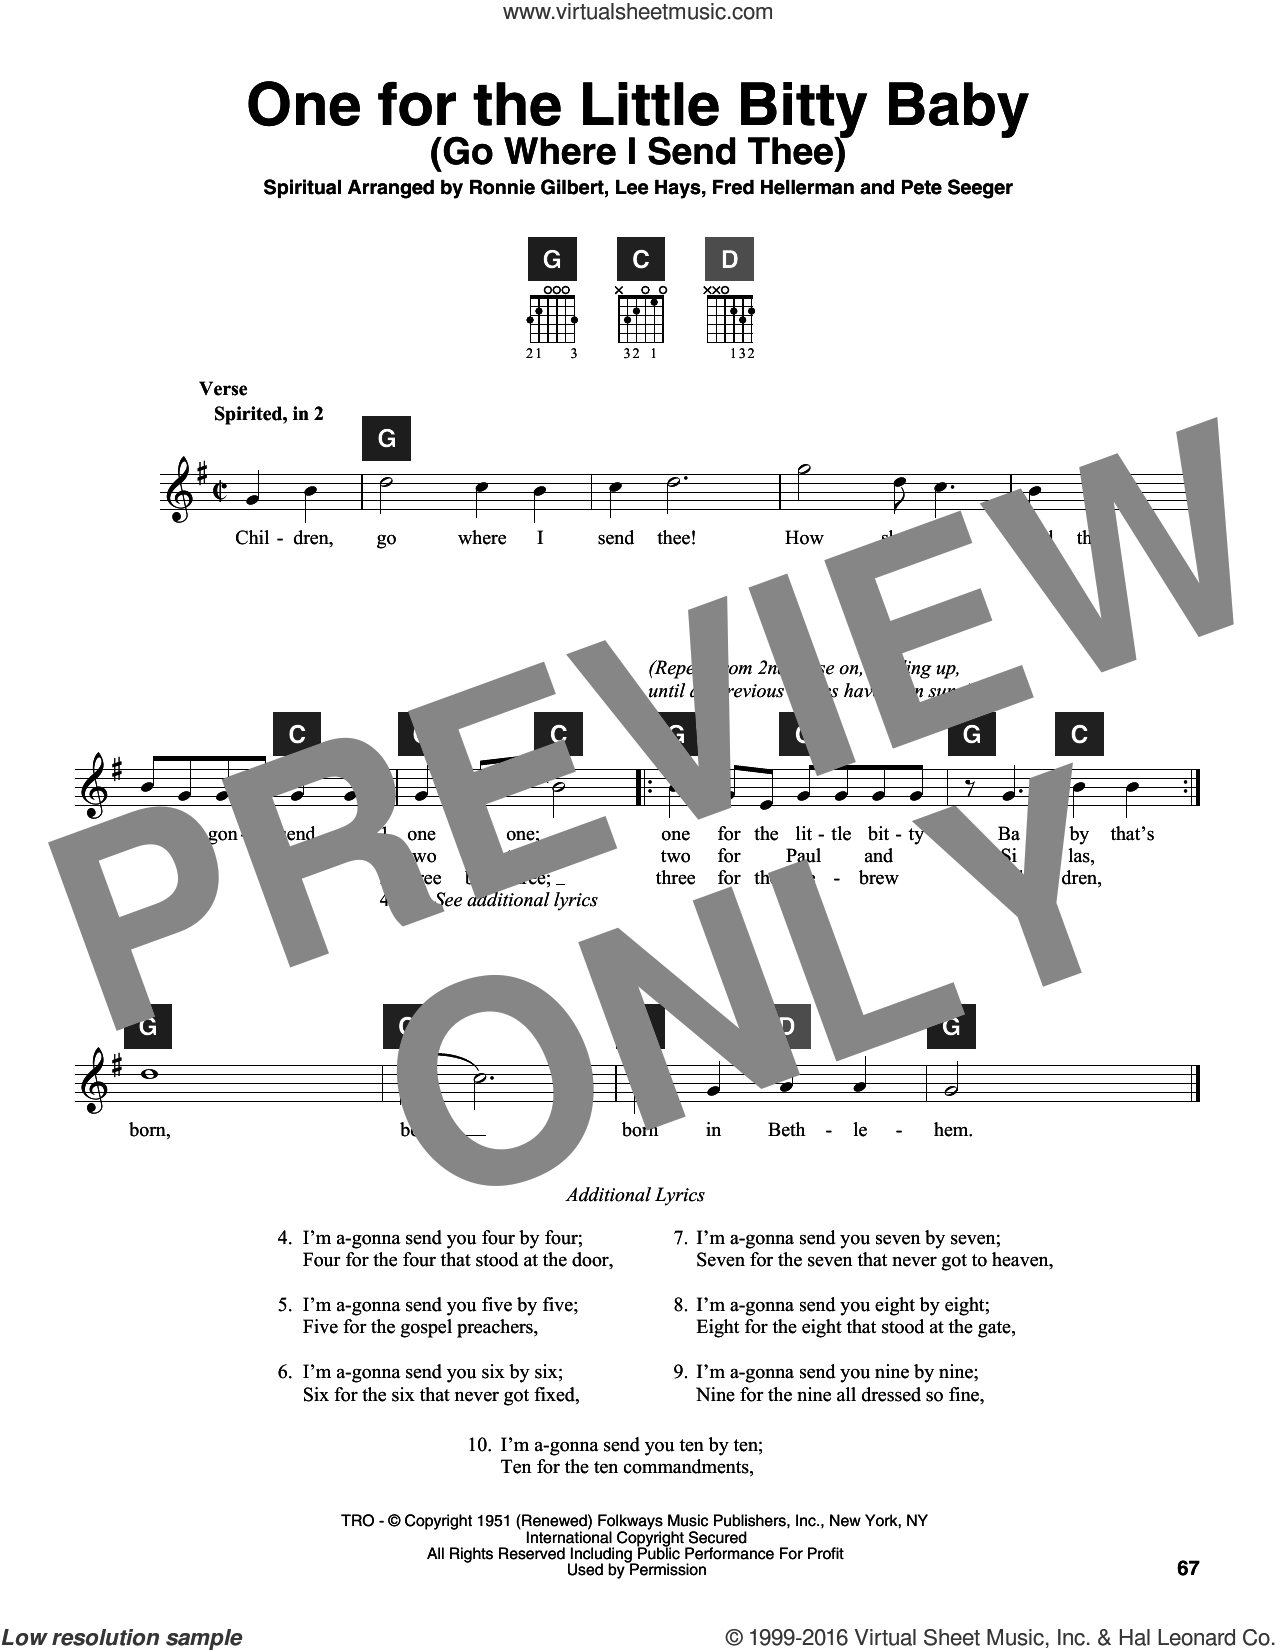 One For The Little Bitty Baby (Go Where I Send Thee) sheet music for guitar solo (ChordBuddy system) by Pete Seeger, Lee Hays and Ronnie Gilbert. Score Image Preview.